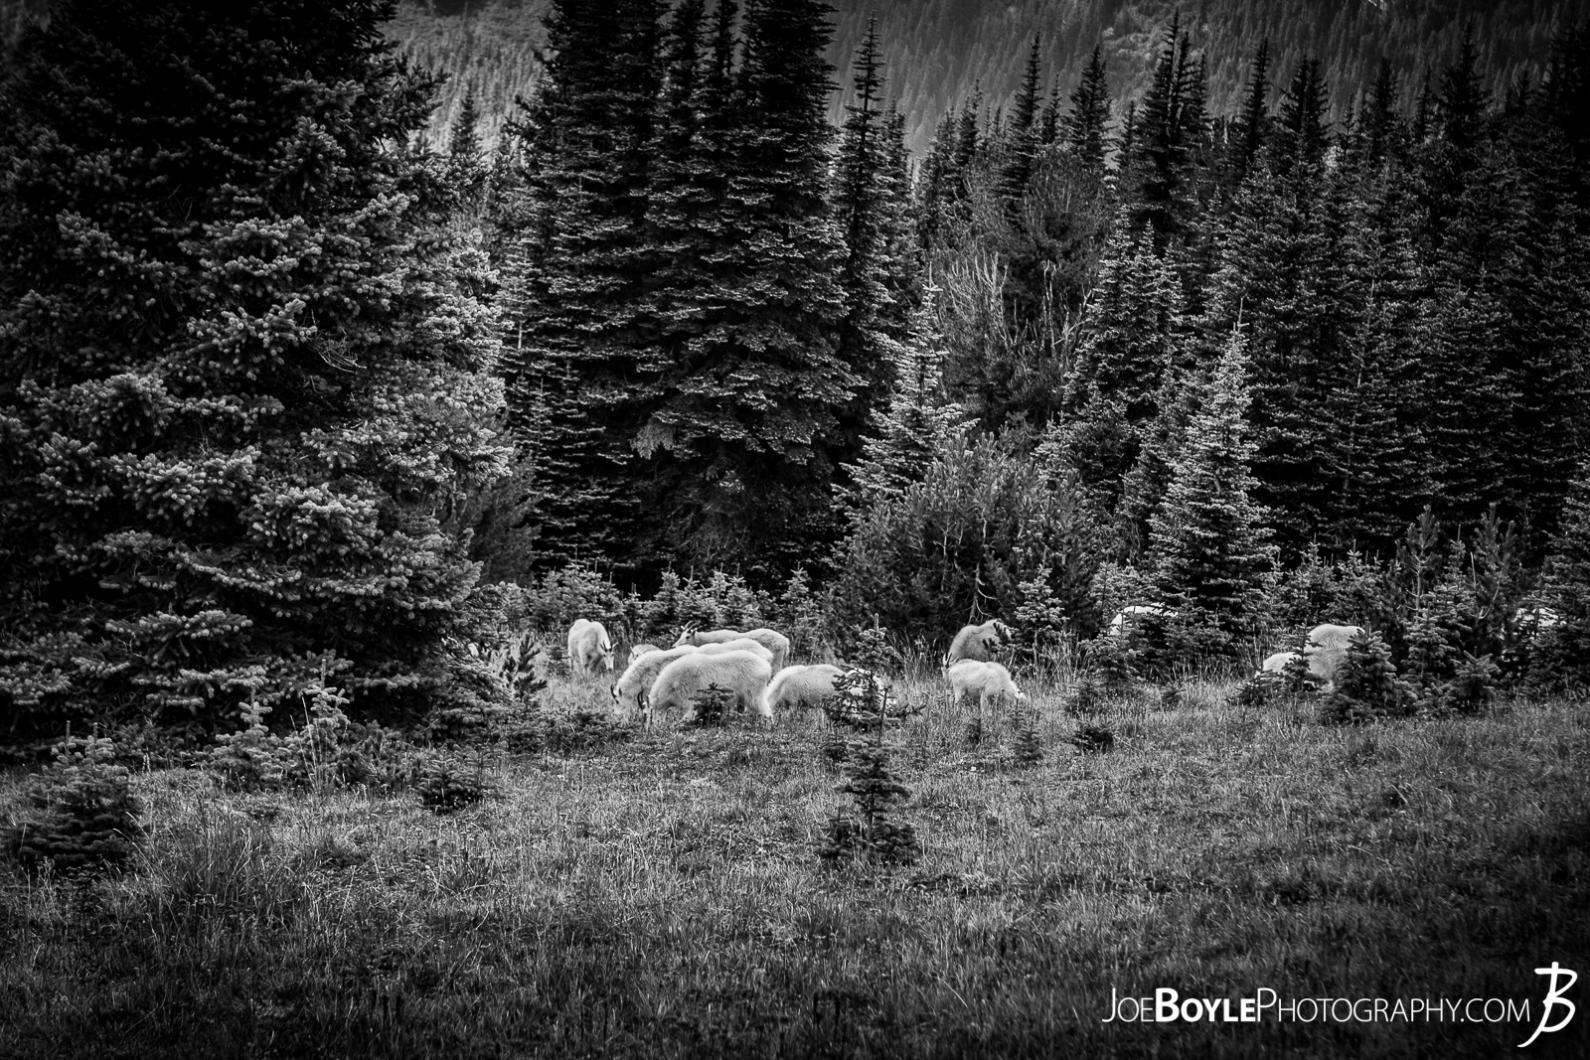 goat-herd-on-the-wonderland-trail-black-white